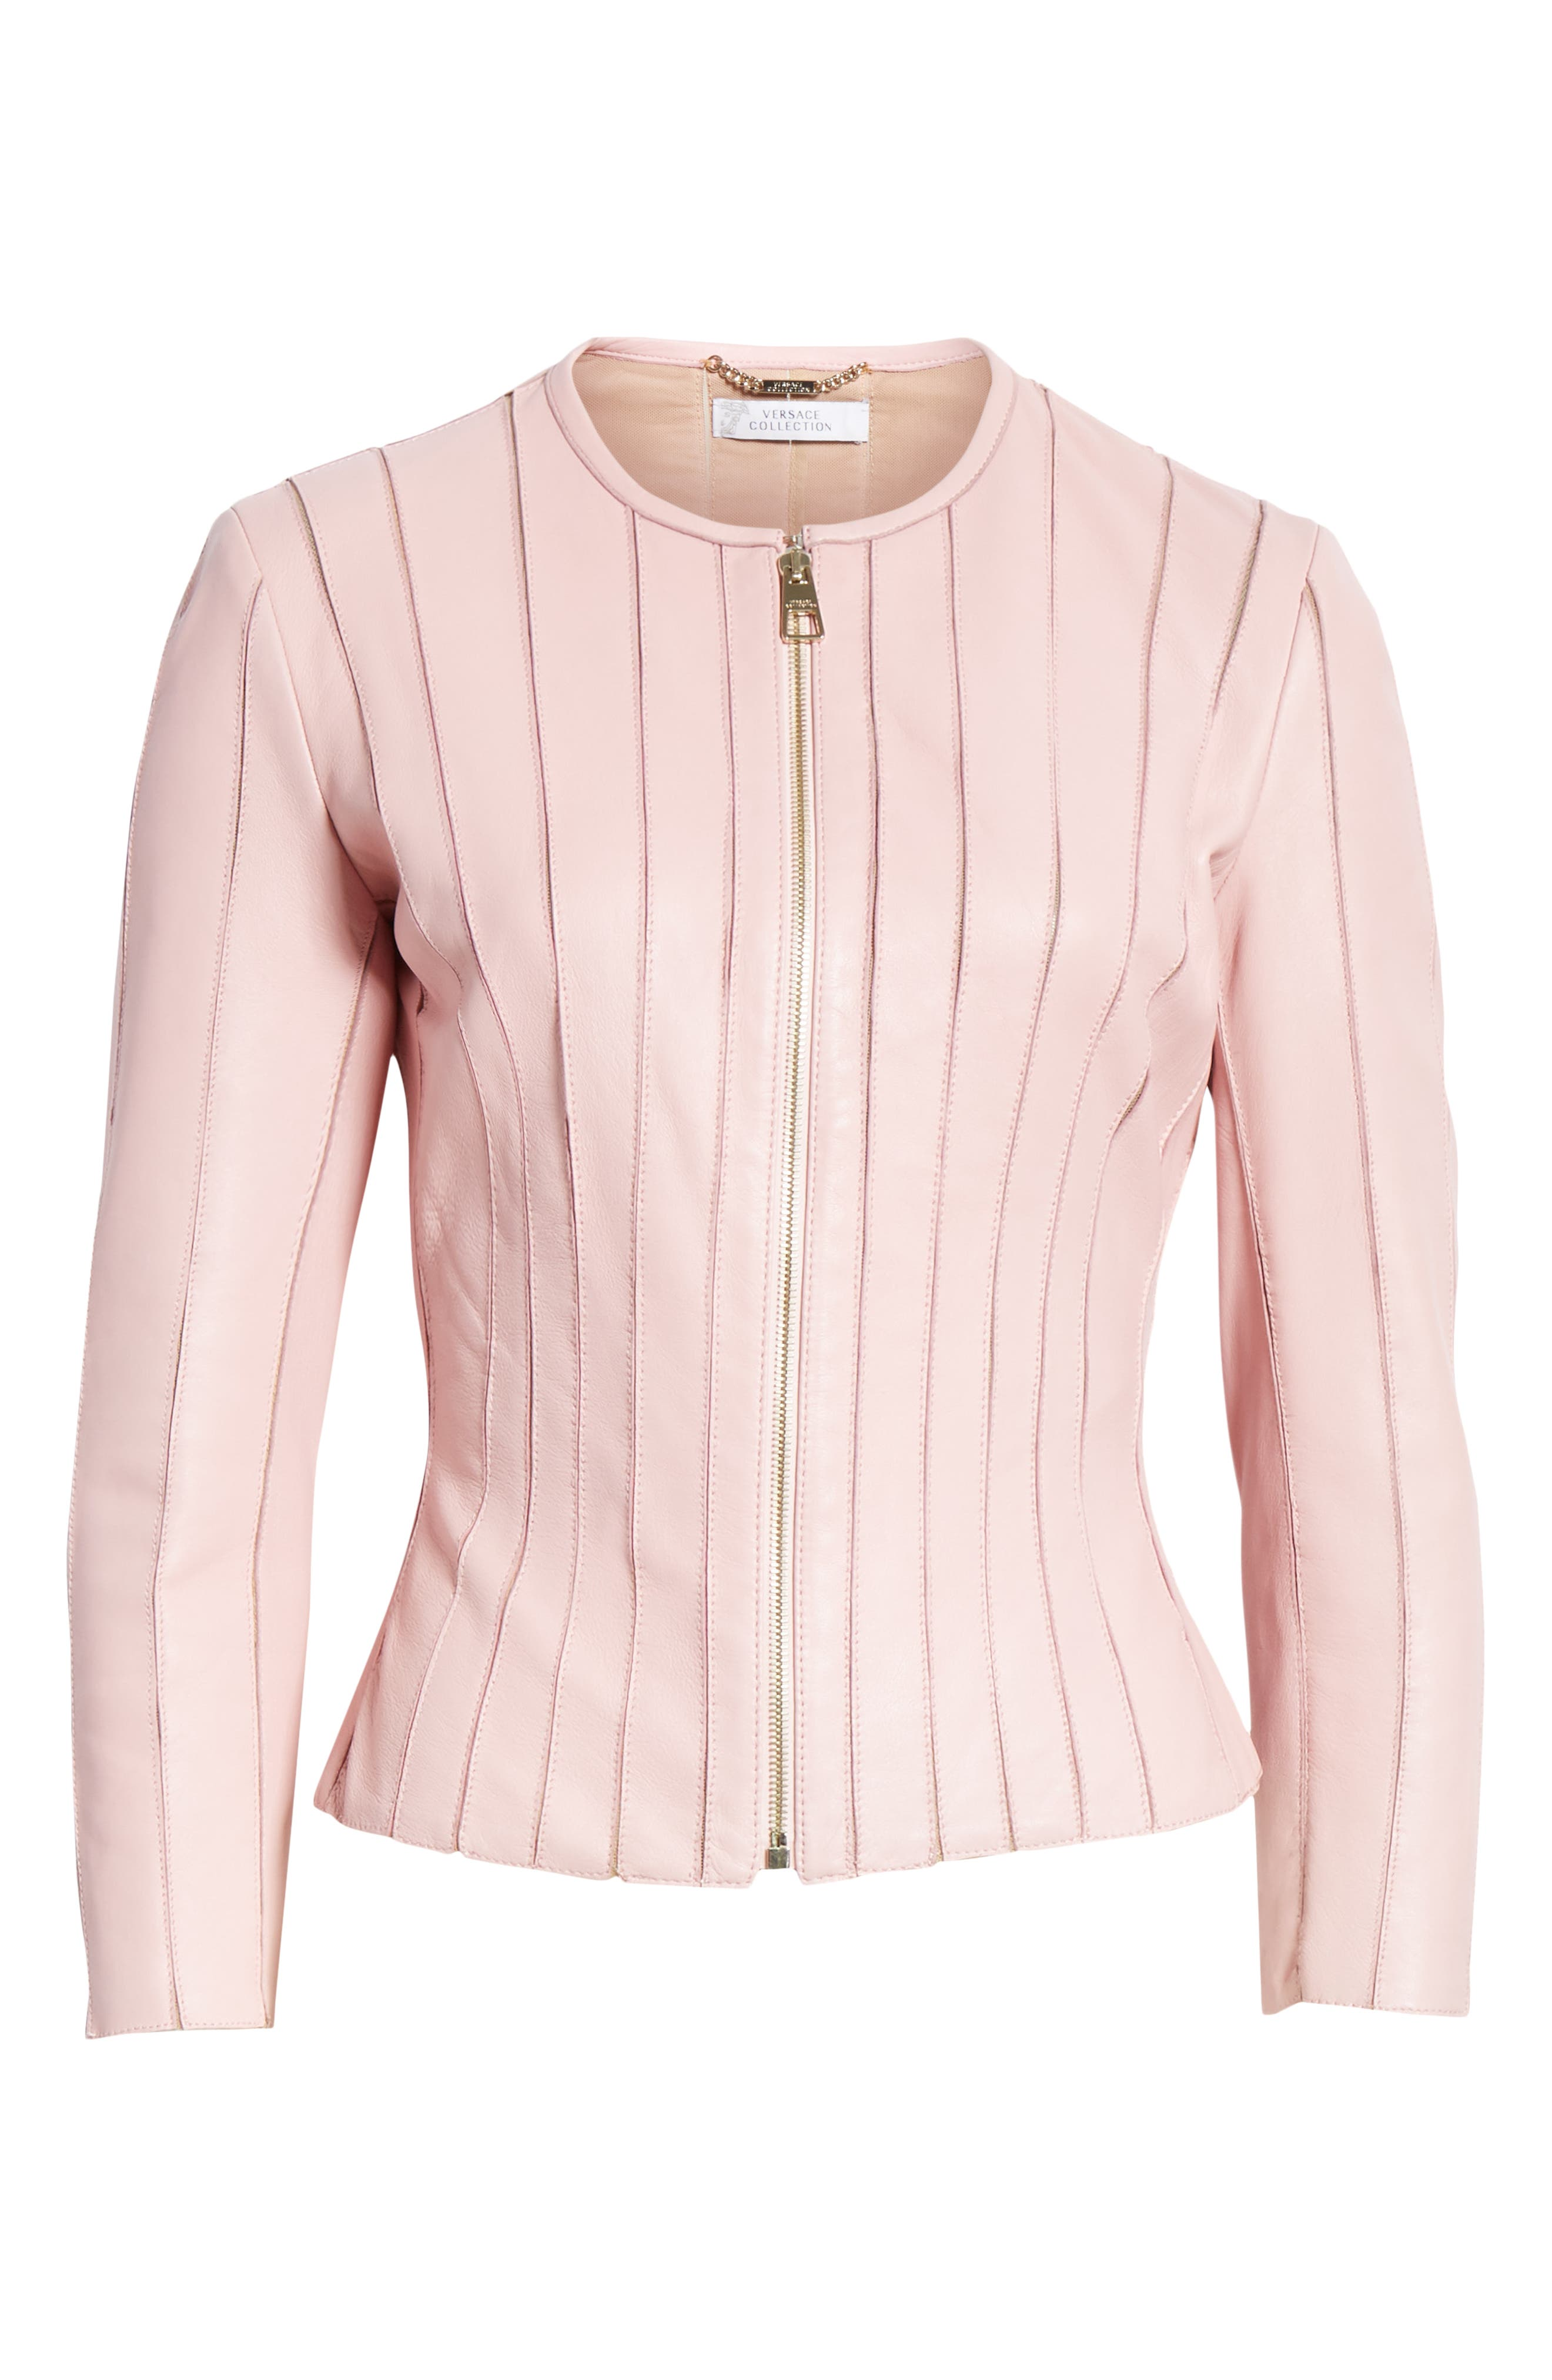 VERSACE COLLECTION, Mesh Rib Leather Jacket, Alternate thumbnail 5, color, PASTEL ROSE